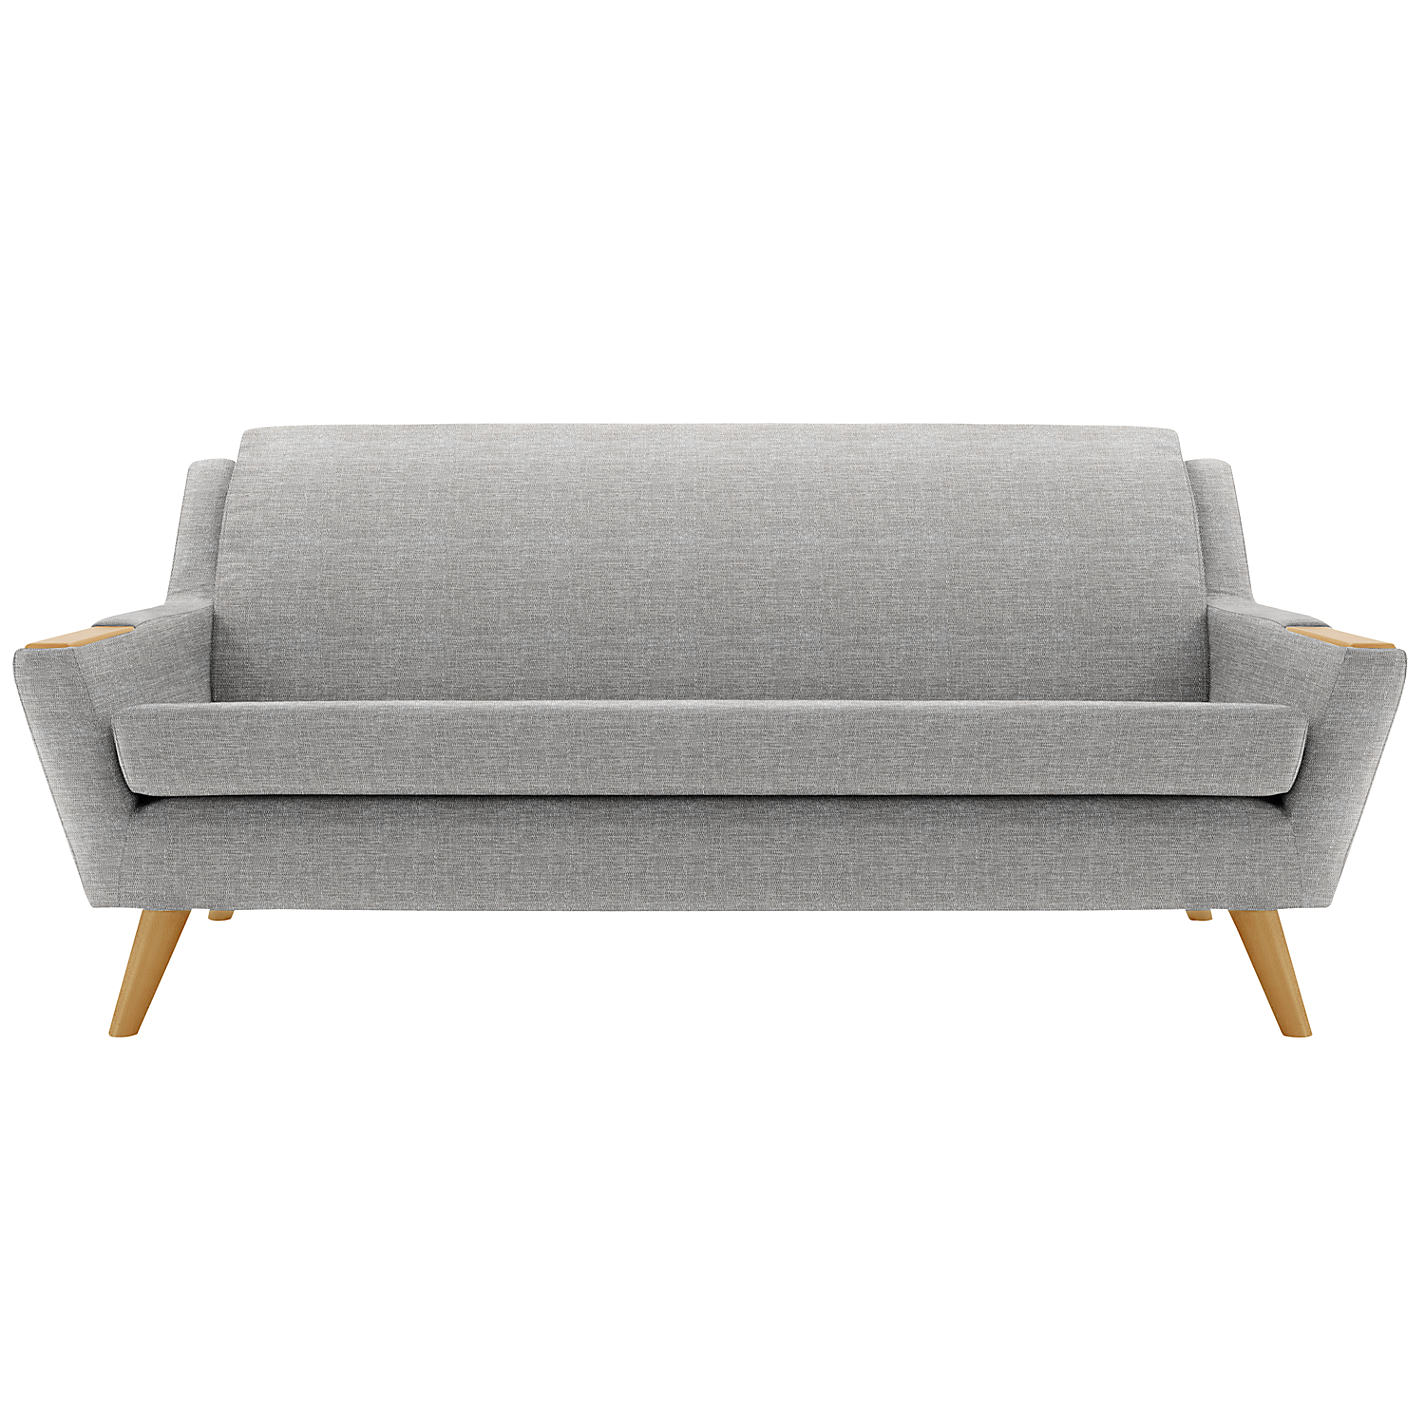 Buy G Plan Vintage The Fifty Five 3 Seater Sofa